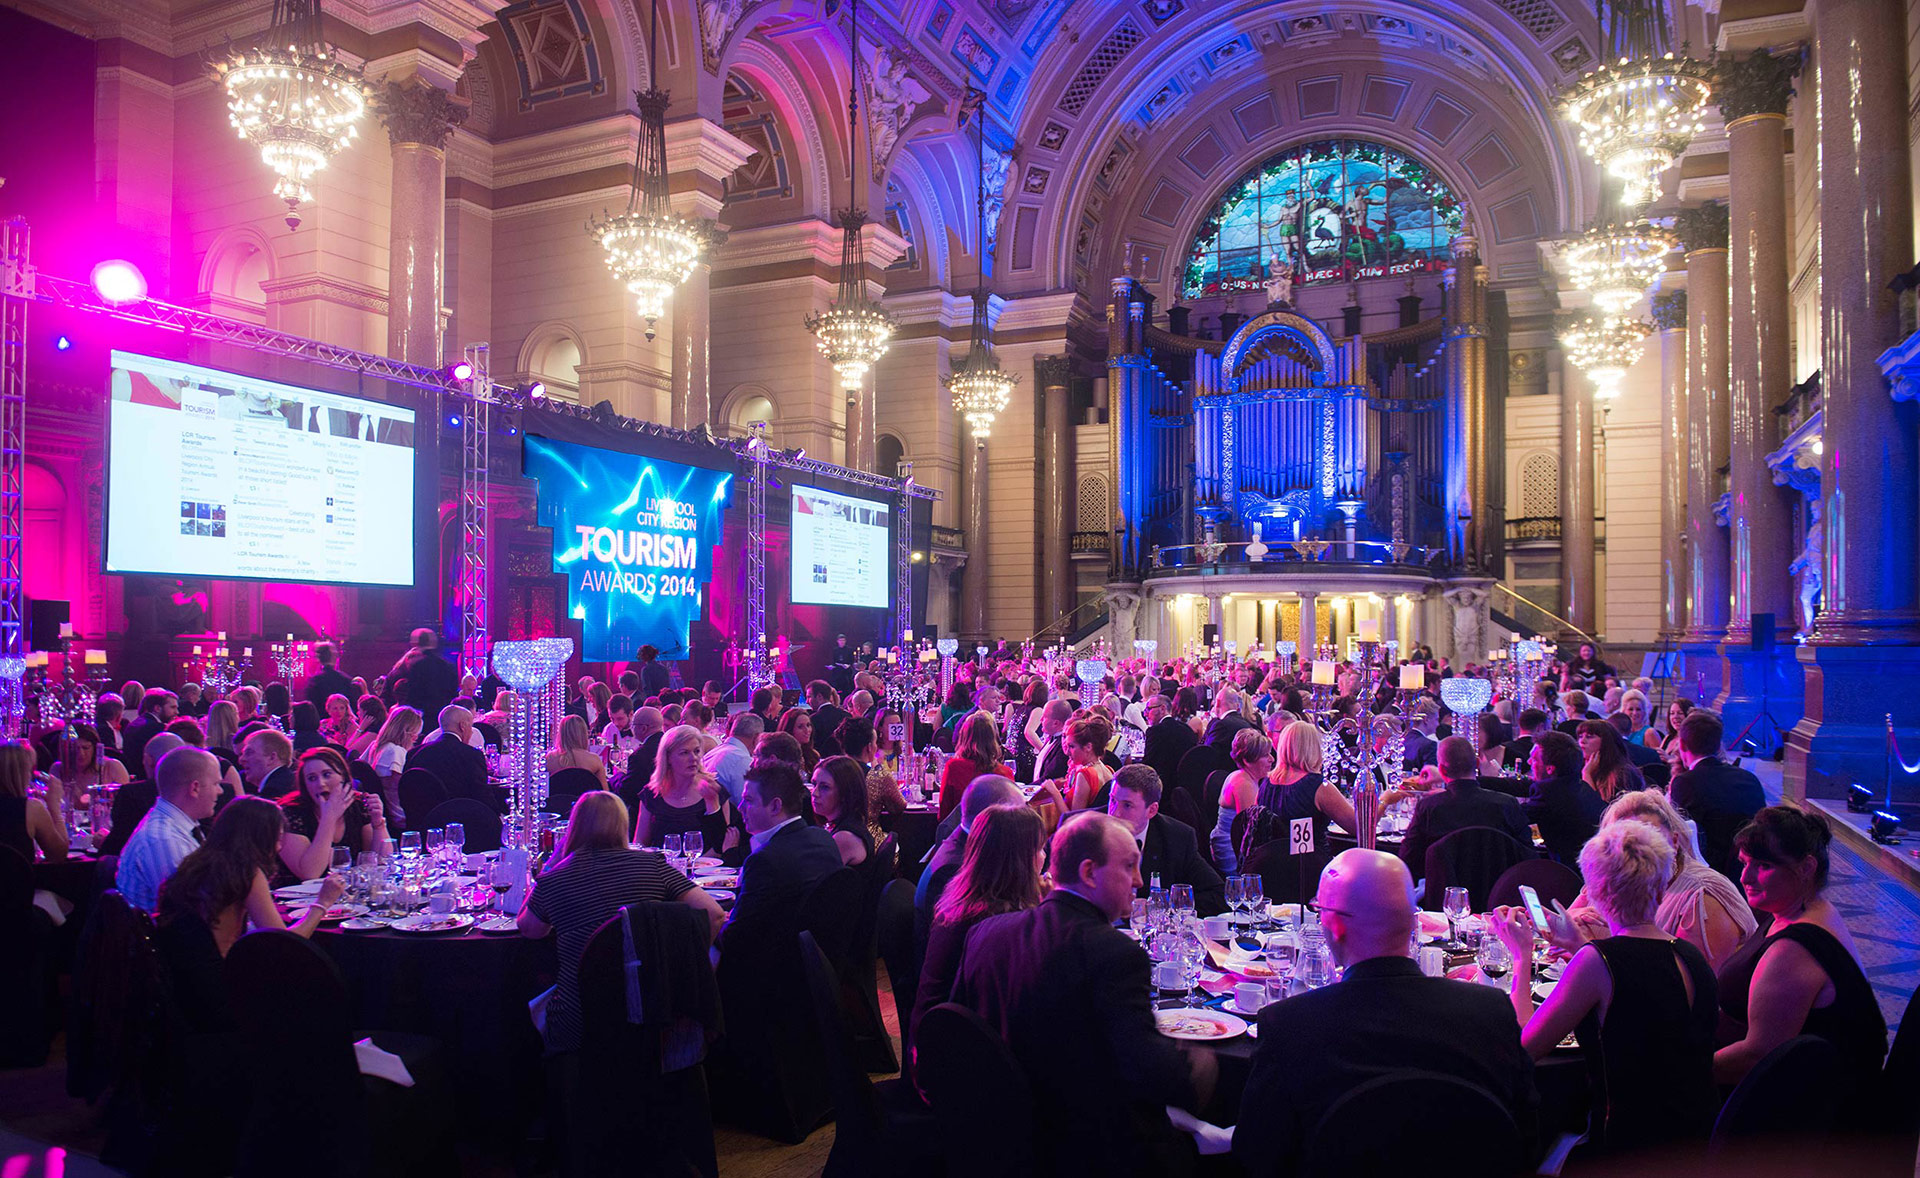 Guests enjoy dinner during annual Tourism Awards event at St George's Hall in Liverpool